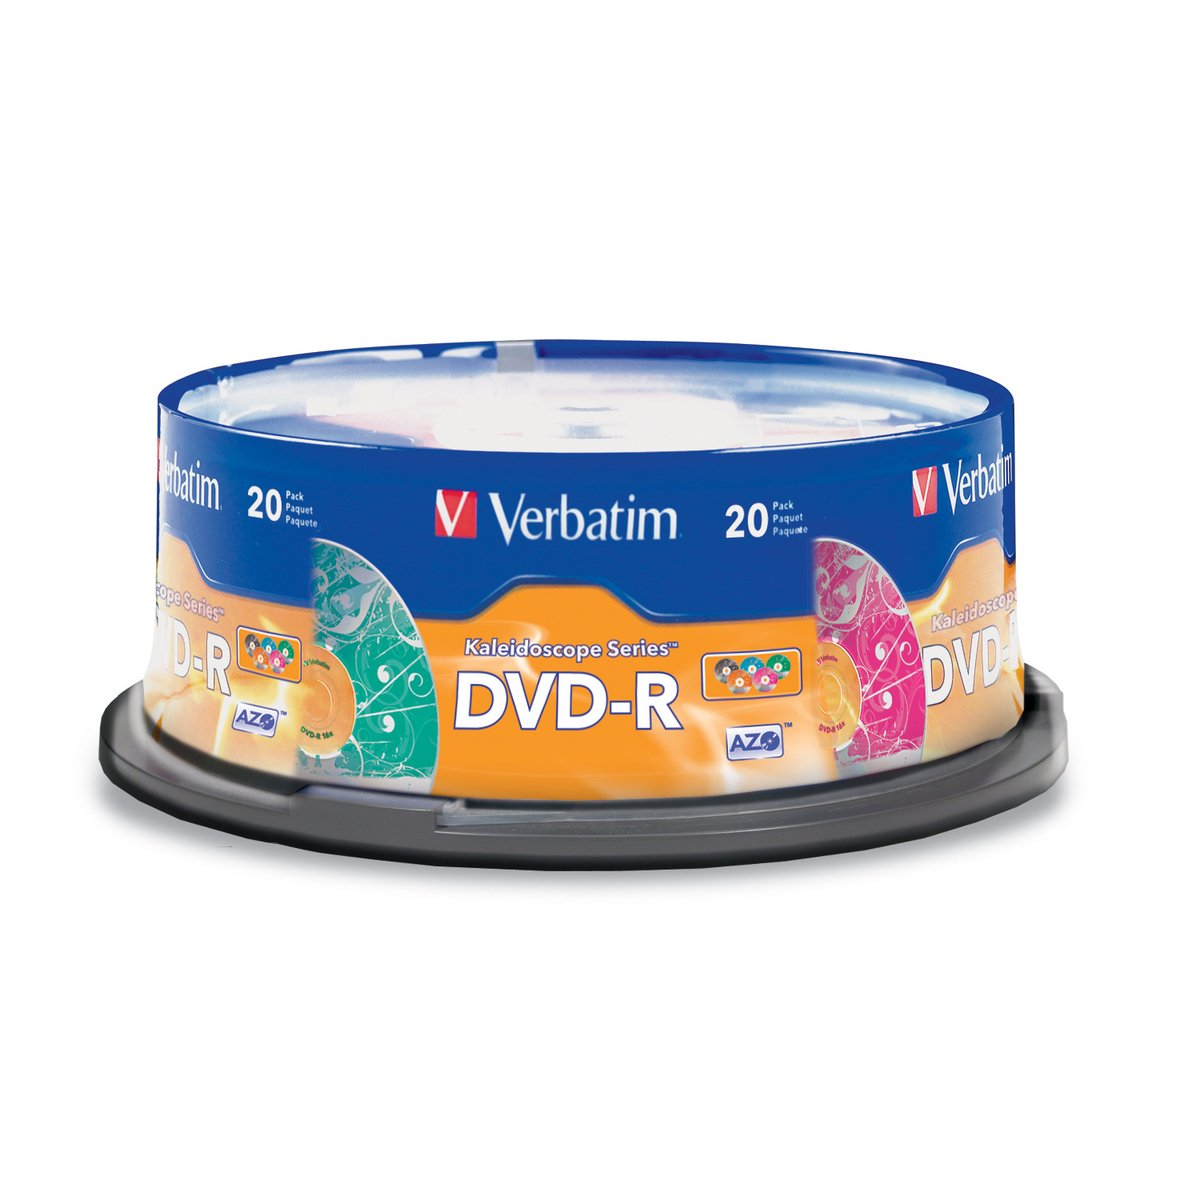 Verbatim 97503 DVD-R 4.7GB 16x  Kaleidoscope Recordable Media Disc - 20 Disc Spindle - Assorted Colors